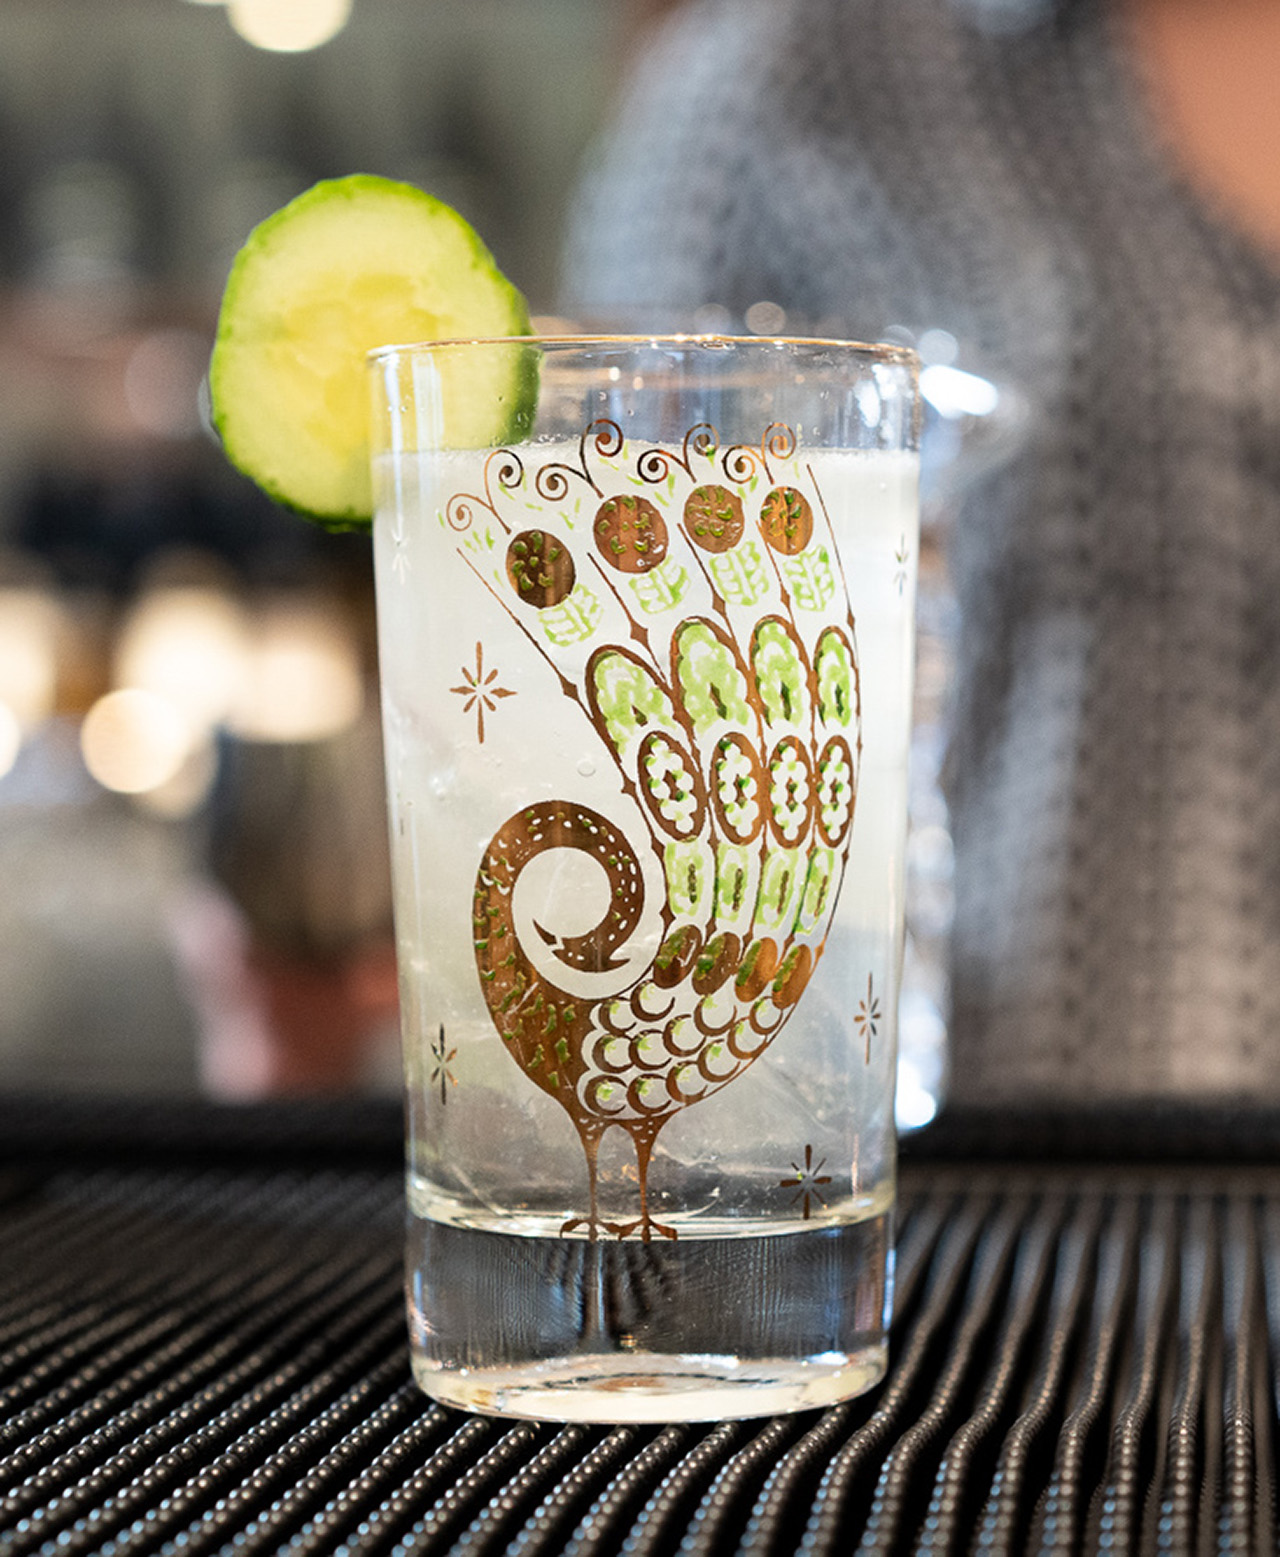 Chara Chamble. Kettle One Vodka, Muddled Cucumber, Ginger of the Indies Ginger Beer, Pink Pepper Bitters.